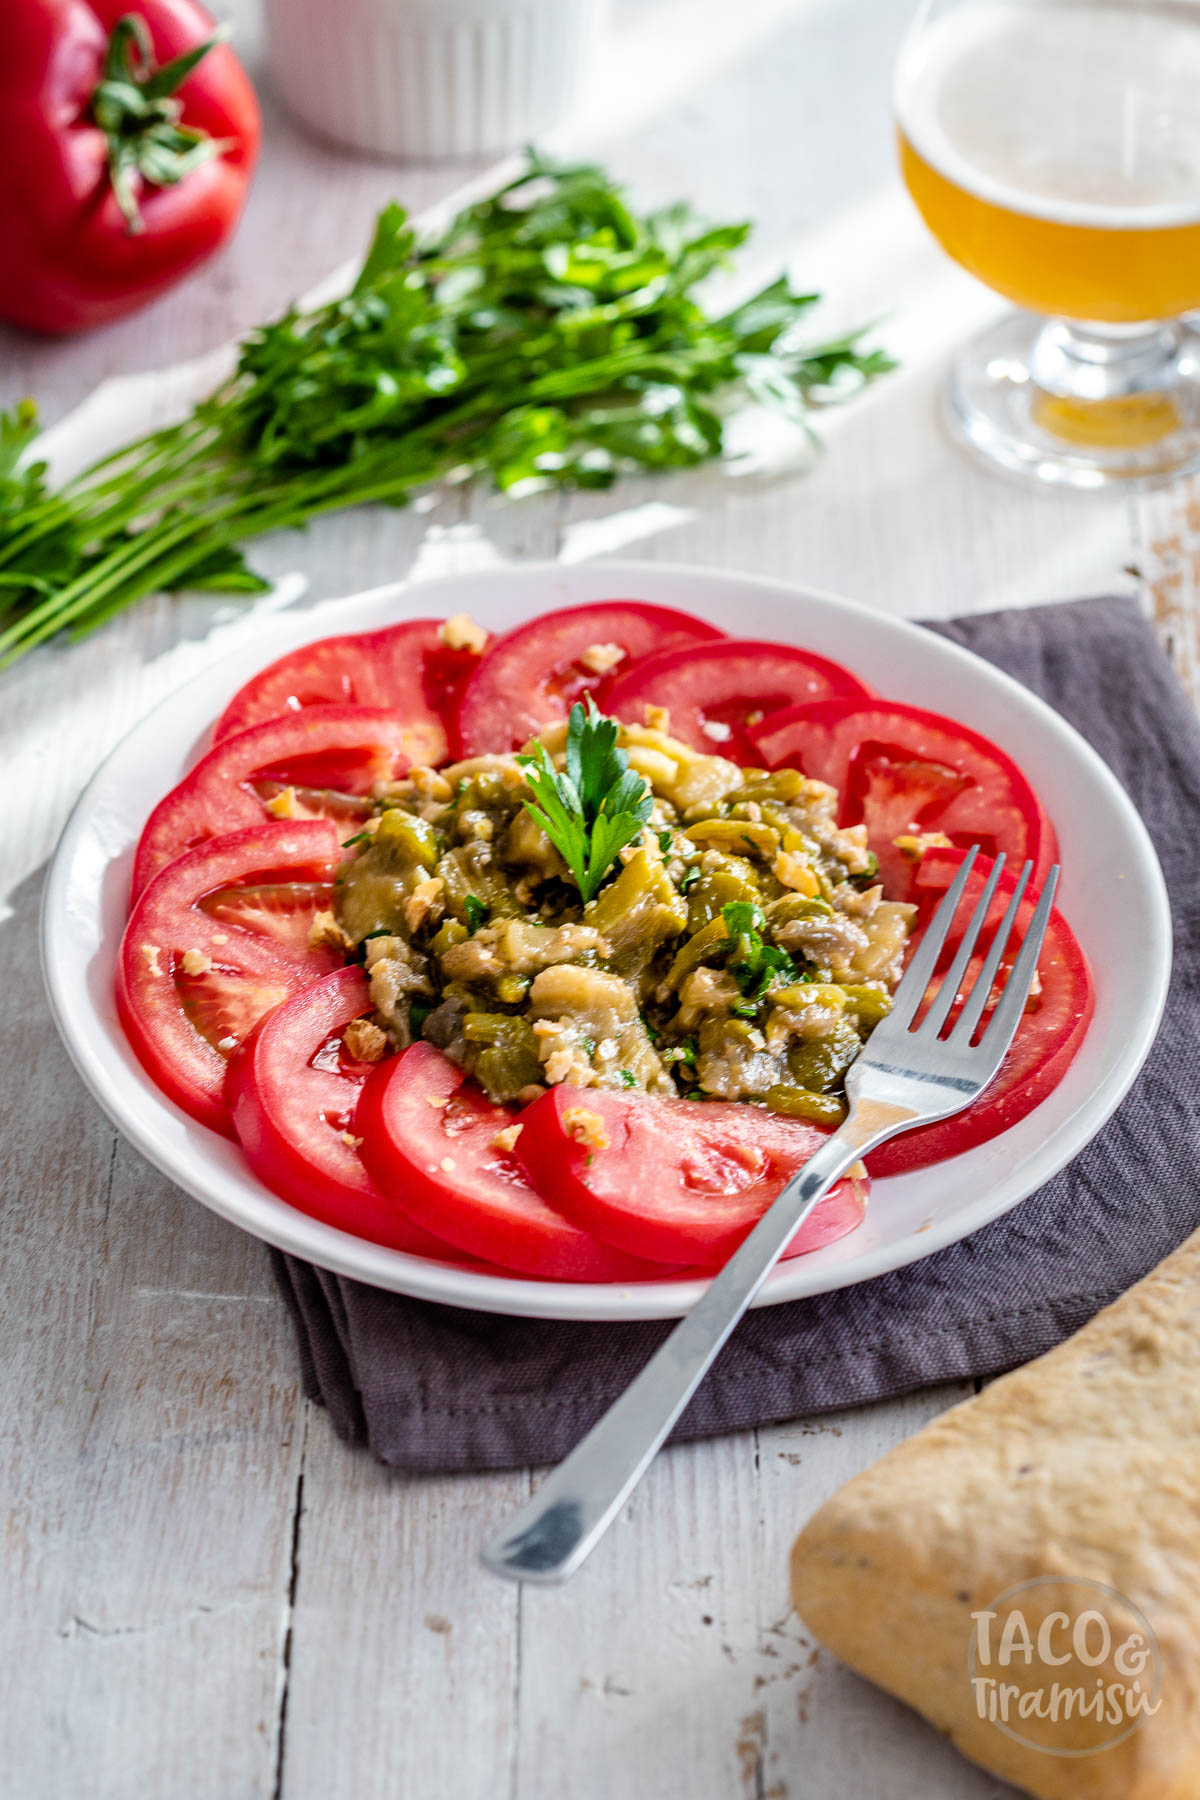 eggplant-pepper salad on a plate with a fork and vegetables aside